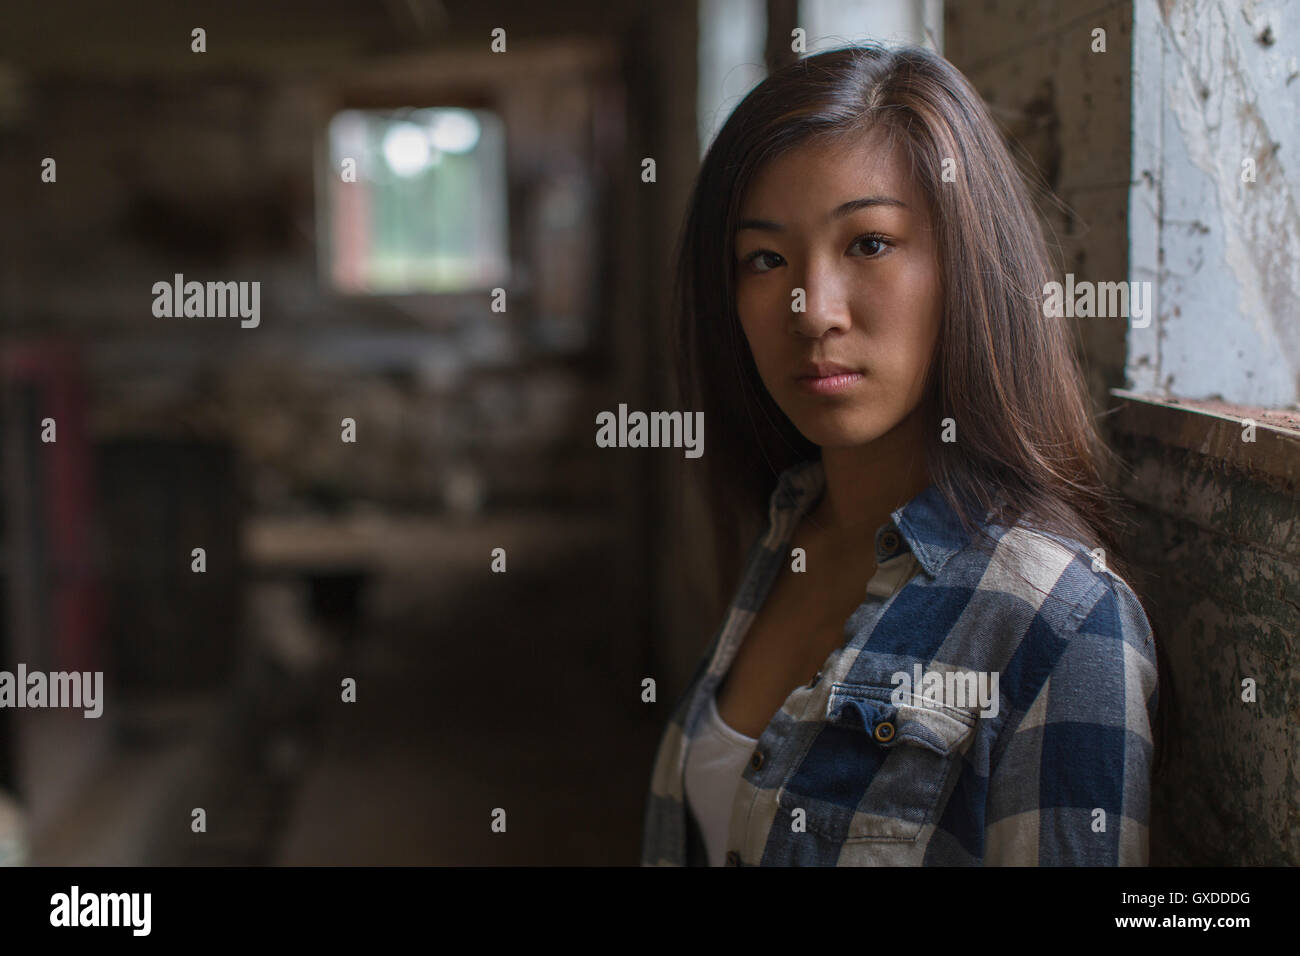 6b2c5de13d0 Portrait of sullen teenage girl leaning against dusty shed wall - Stock  Image